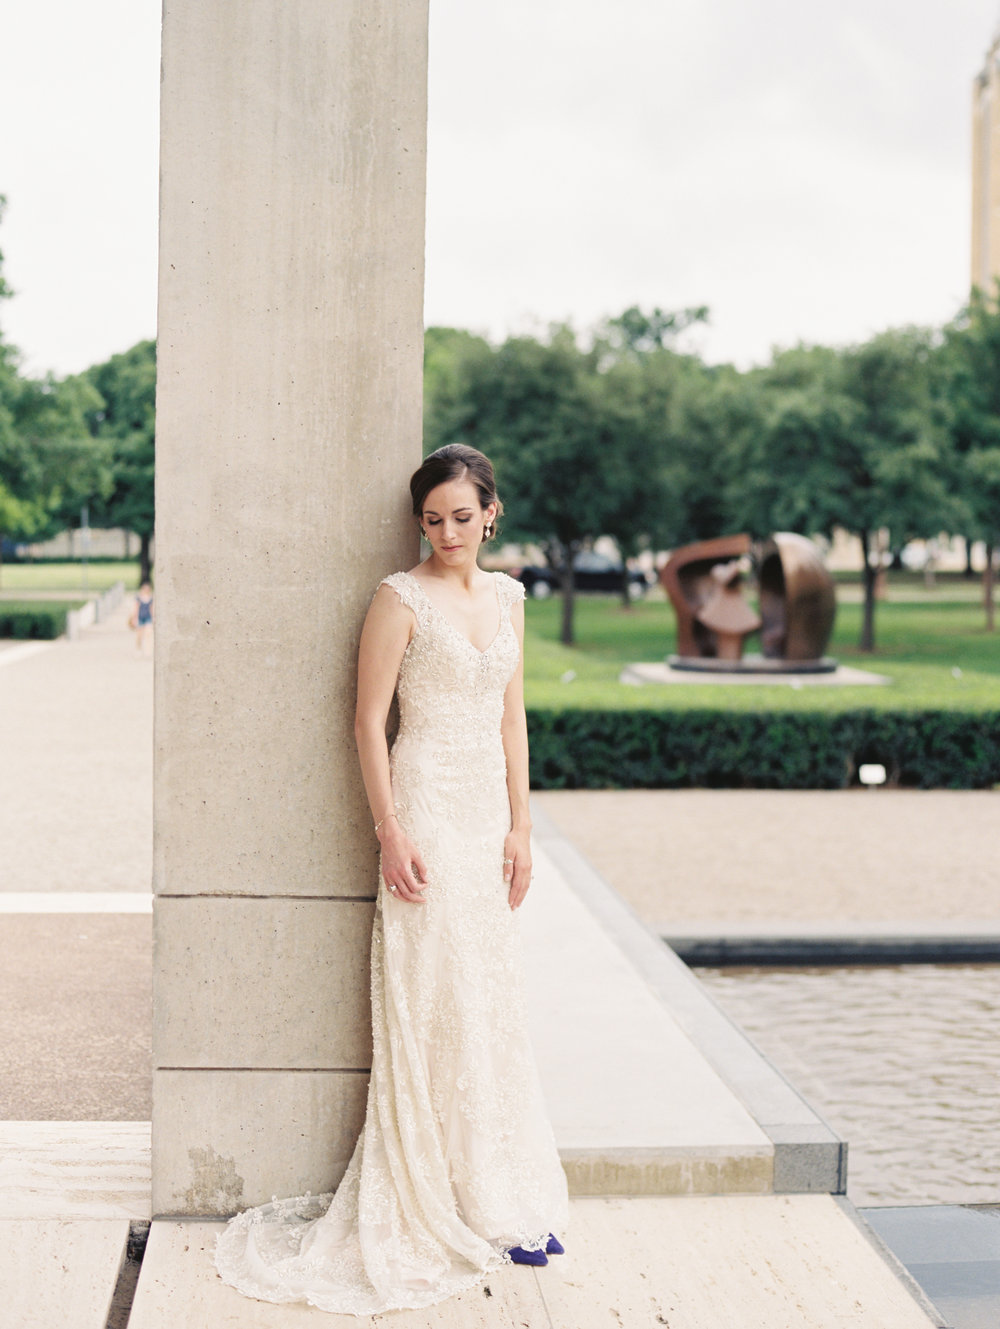 fort-worth-texas-kimbell-art-museum-bridals-ar-photography-lauren-221.jpg